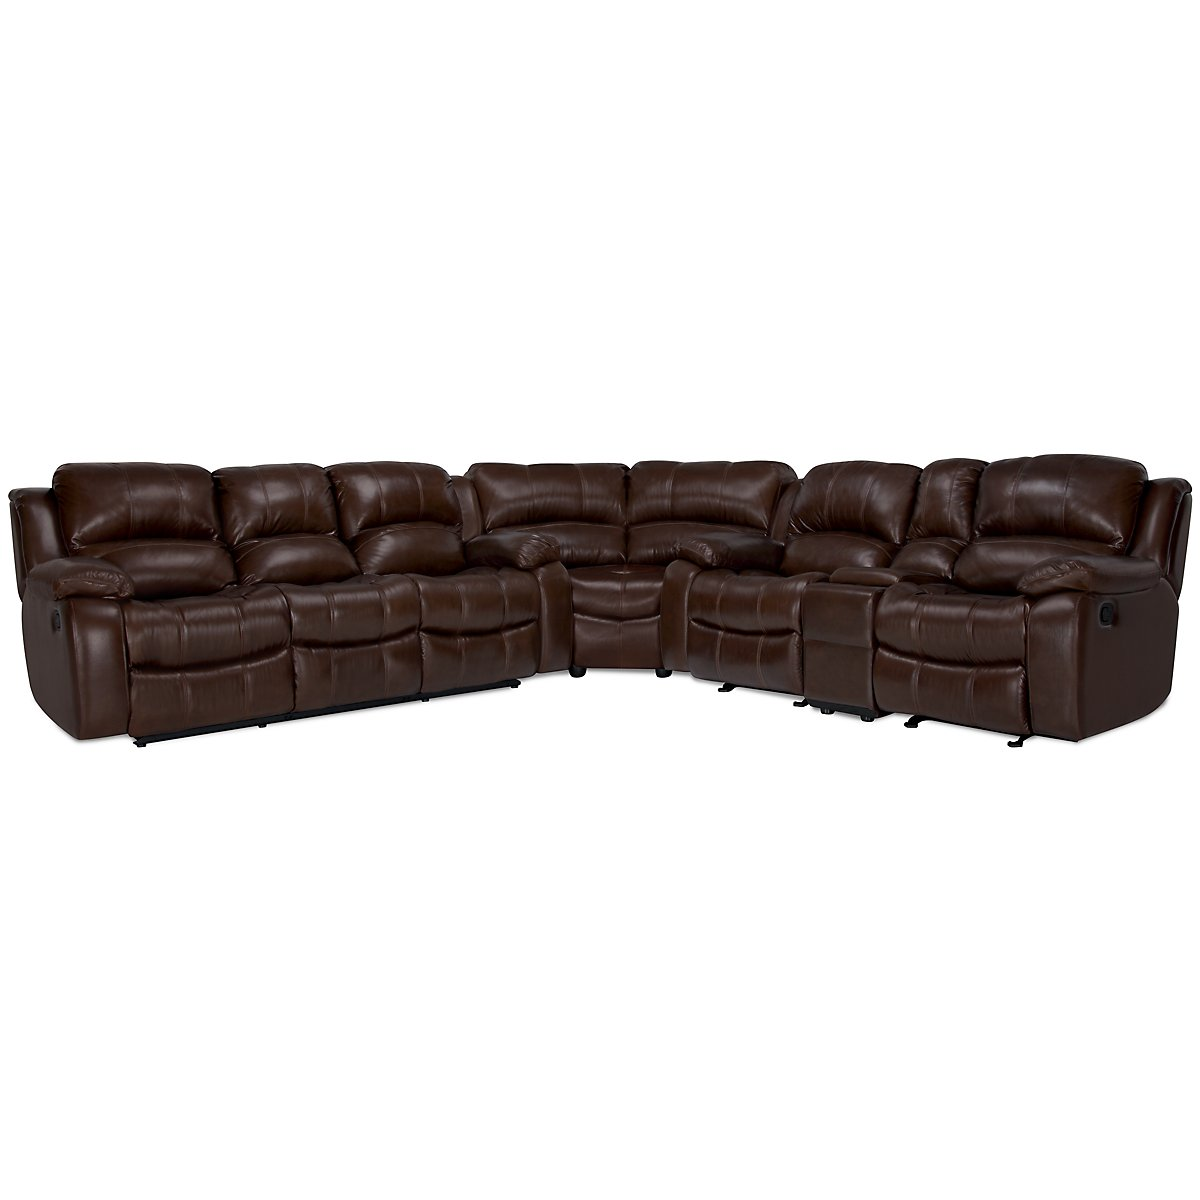 Tyler3 Md Brown Leather & Vinyl Two-Arm Power Reclining Sectional